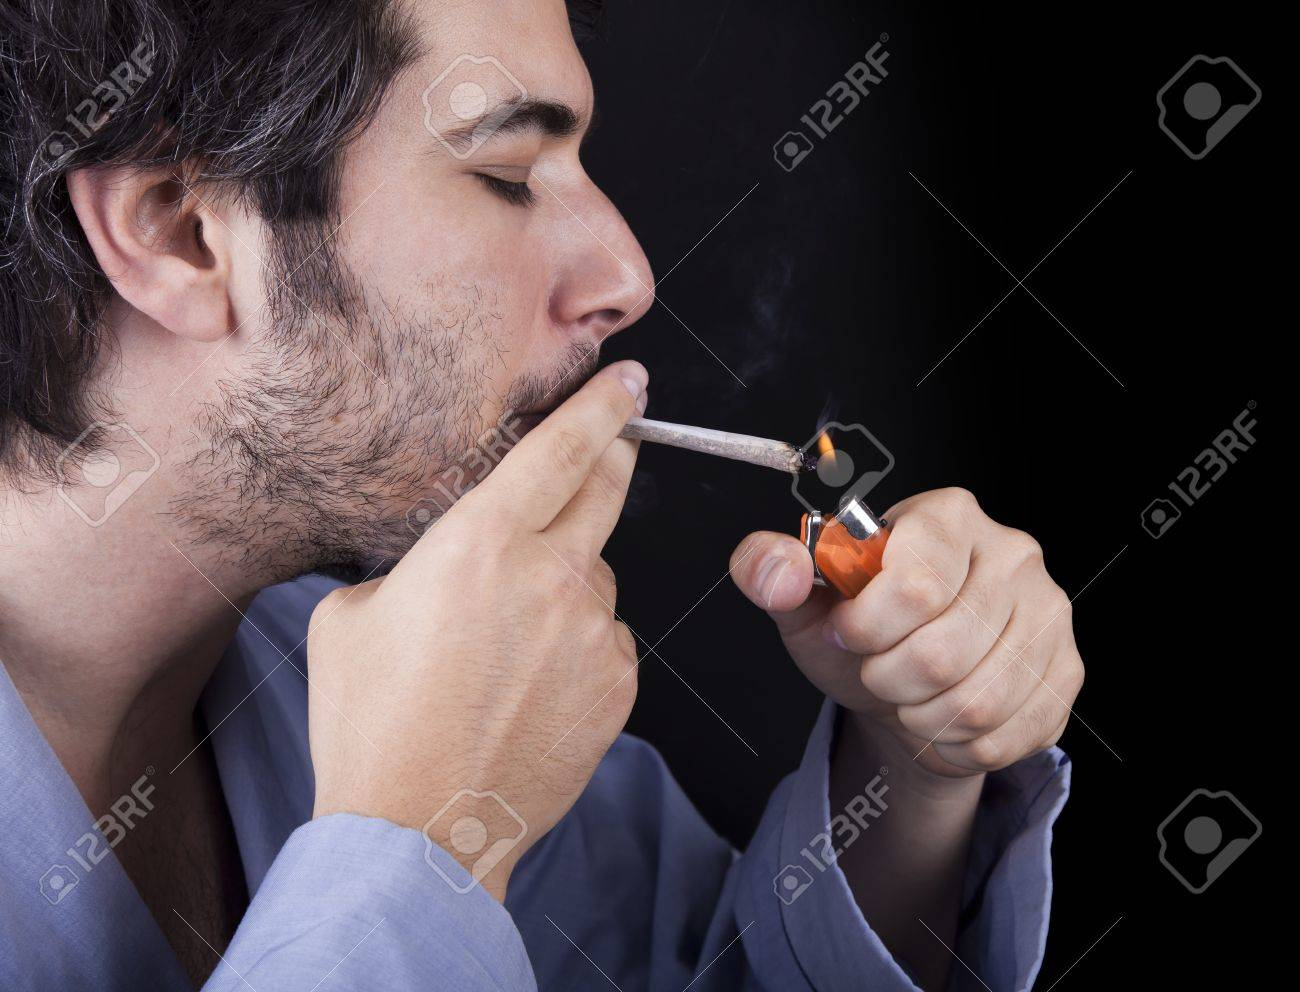 Closeup of an adult man (30 years old) with his profile to the camera. He appears to be quite a bum, being unshaved and wearing a light blue fabric robe, concentrated in lighting a marijuana jspliff (aka reefer; joint) with a simple disposable half-transp Stock Photo - 19281635